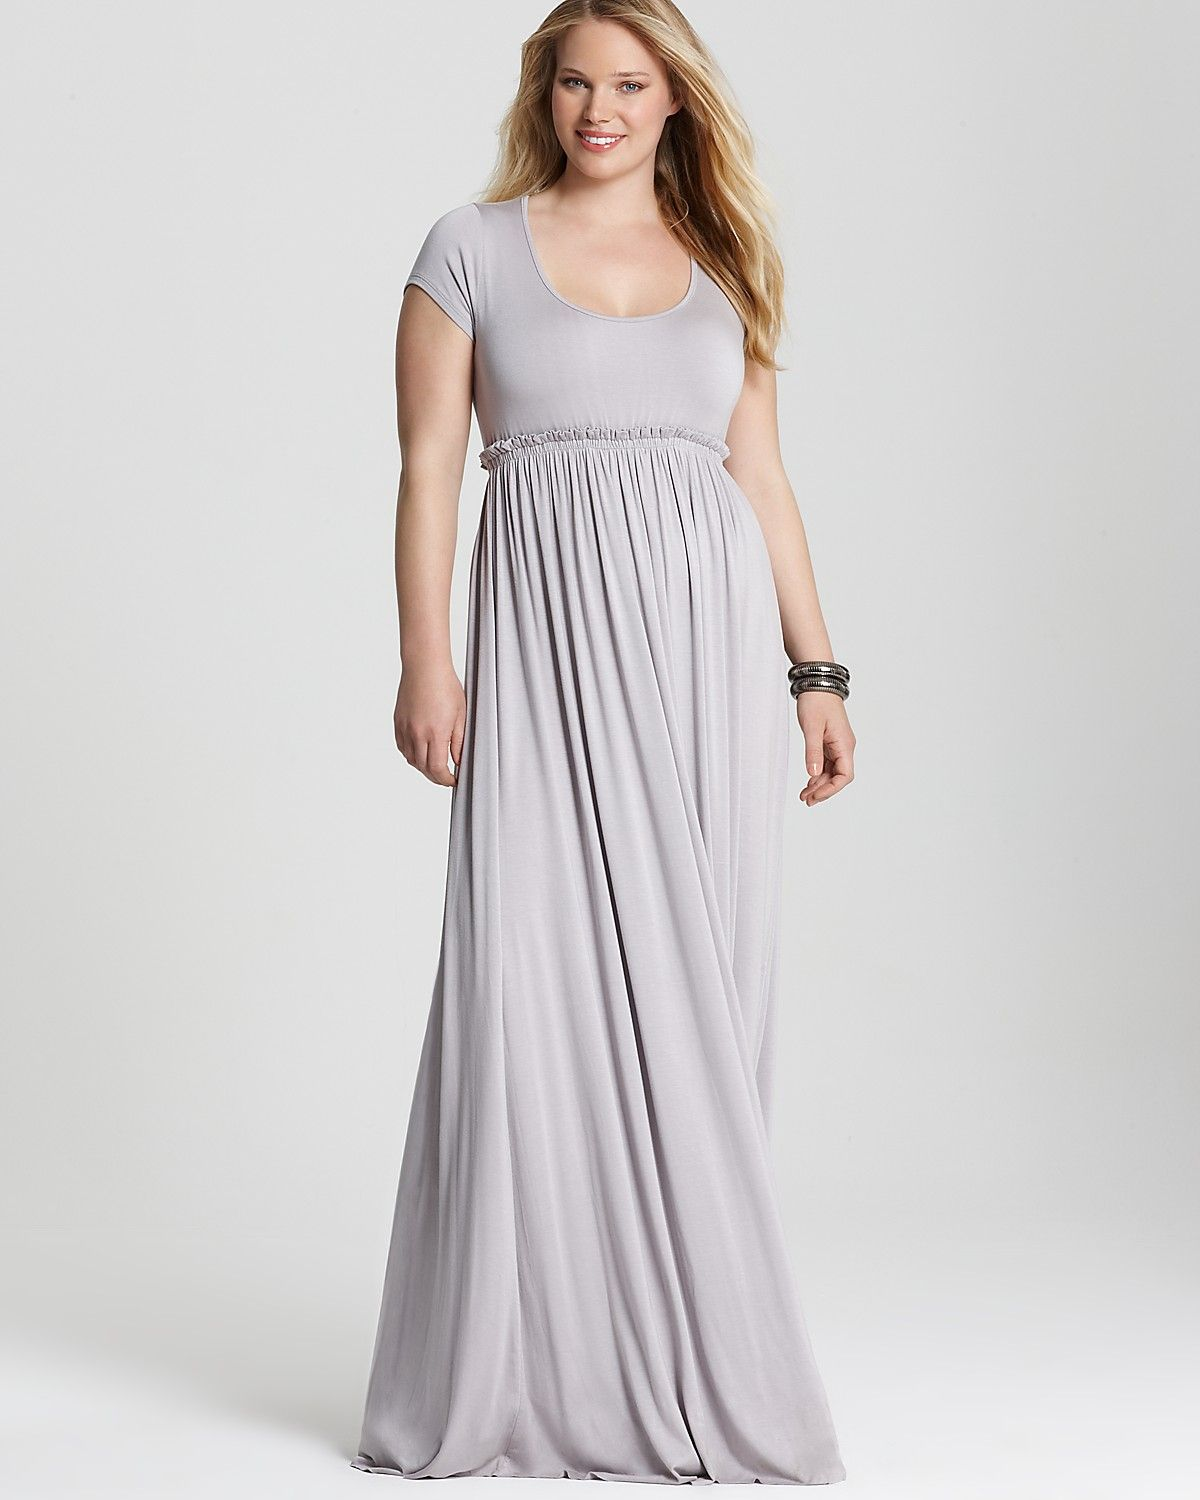 white boat neck short sleeved empire waist maxi dress | Rachel ...